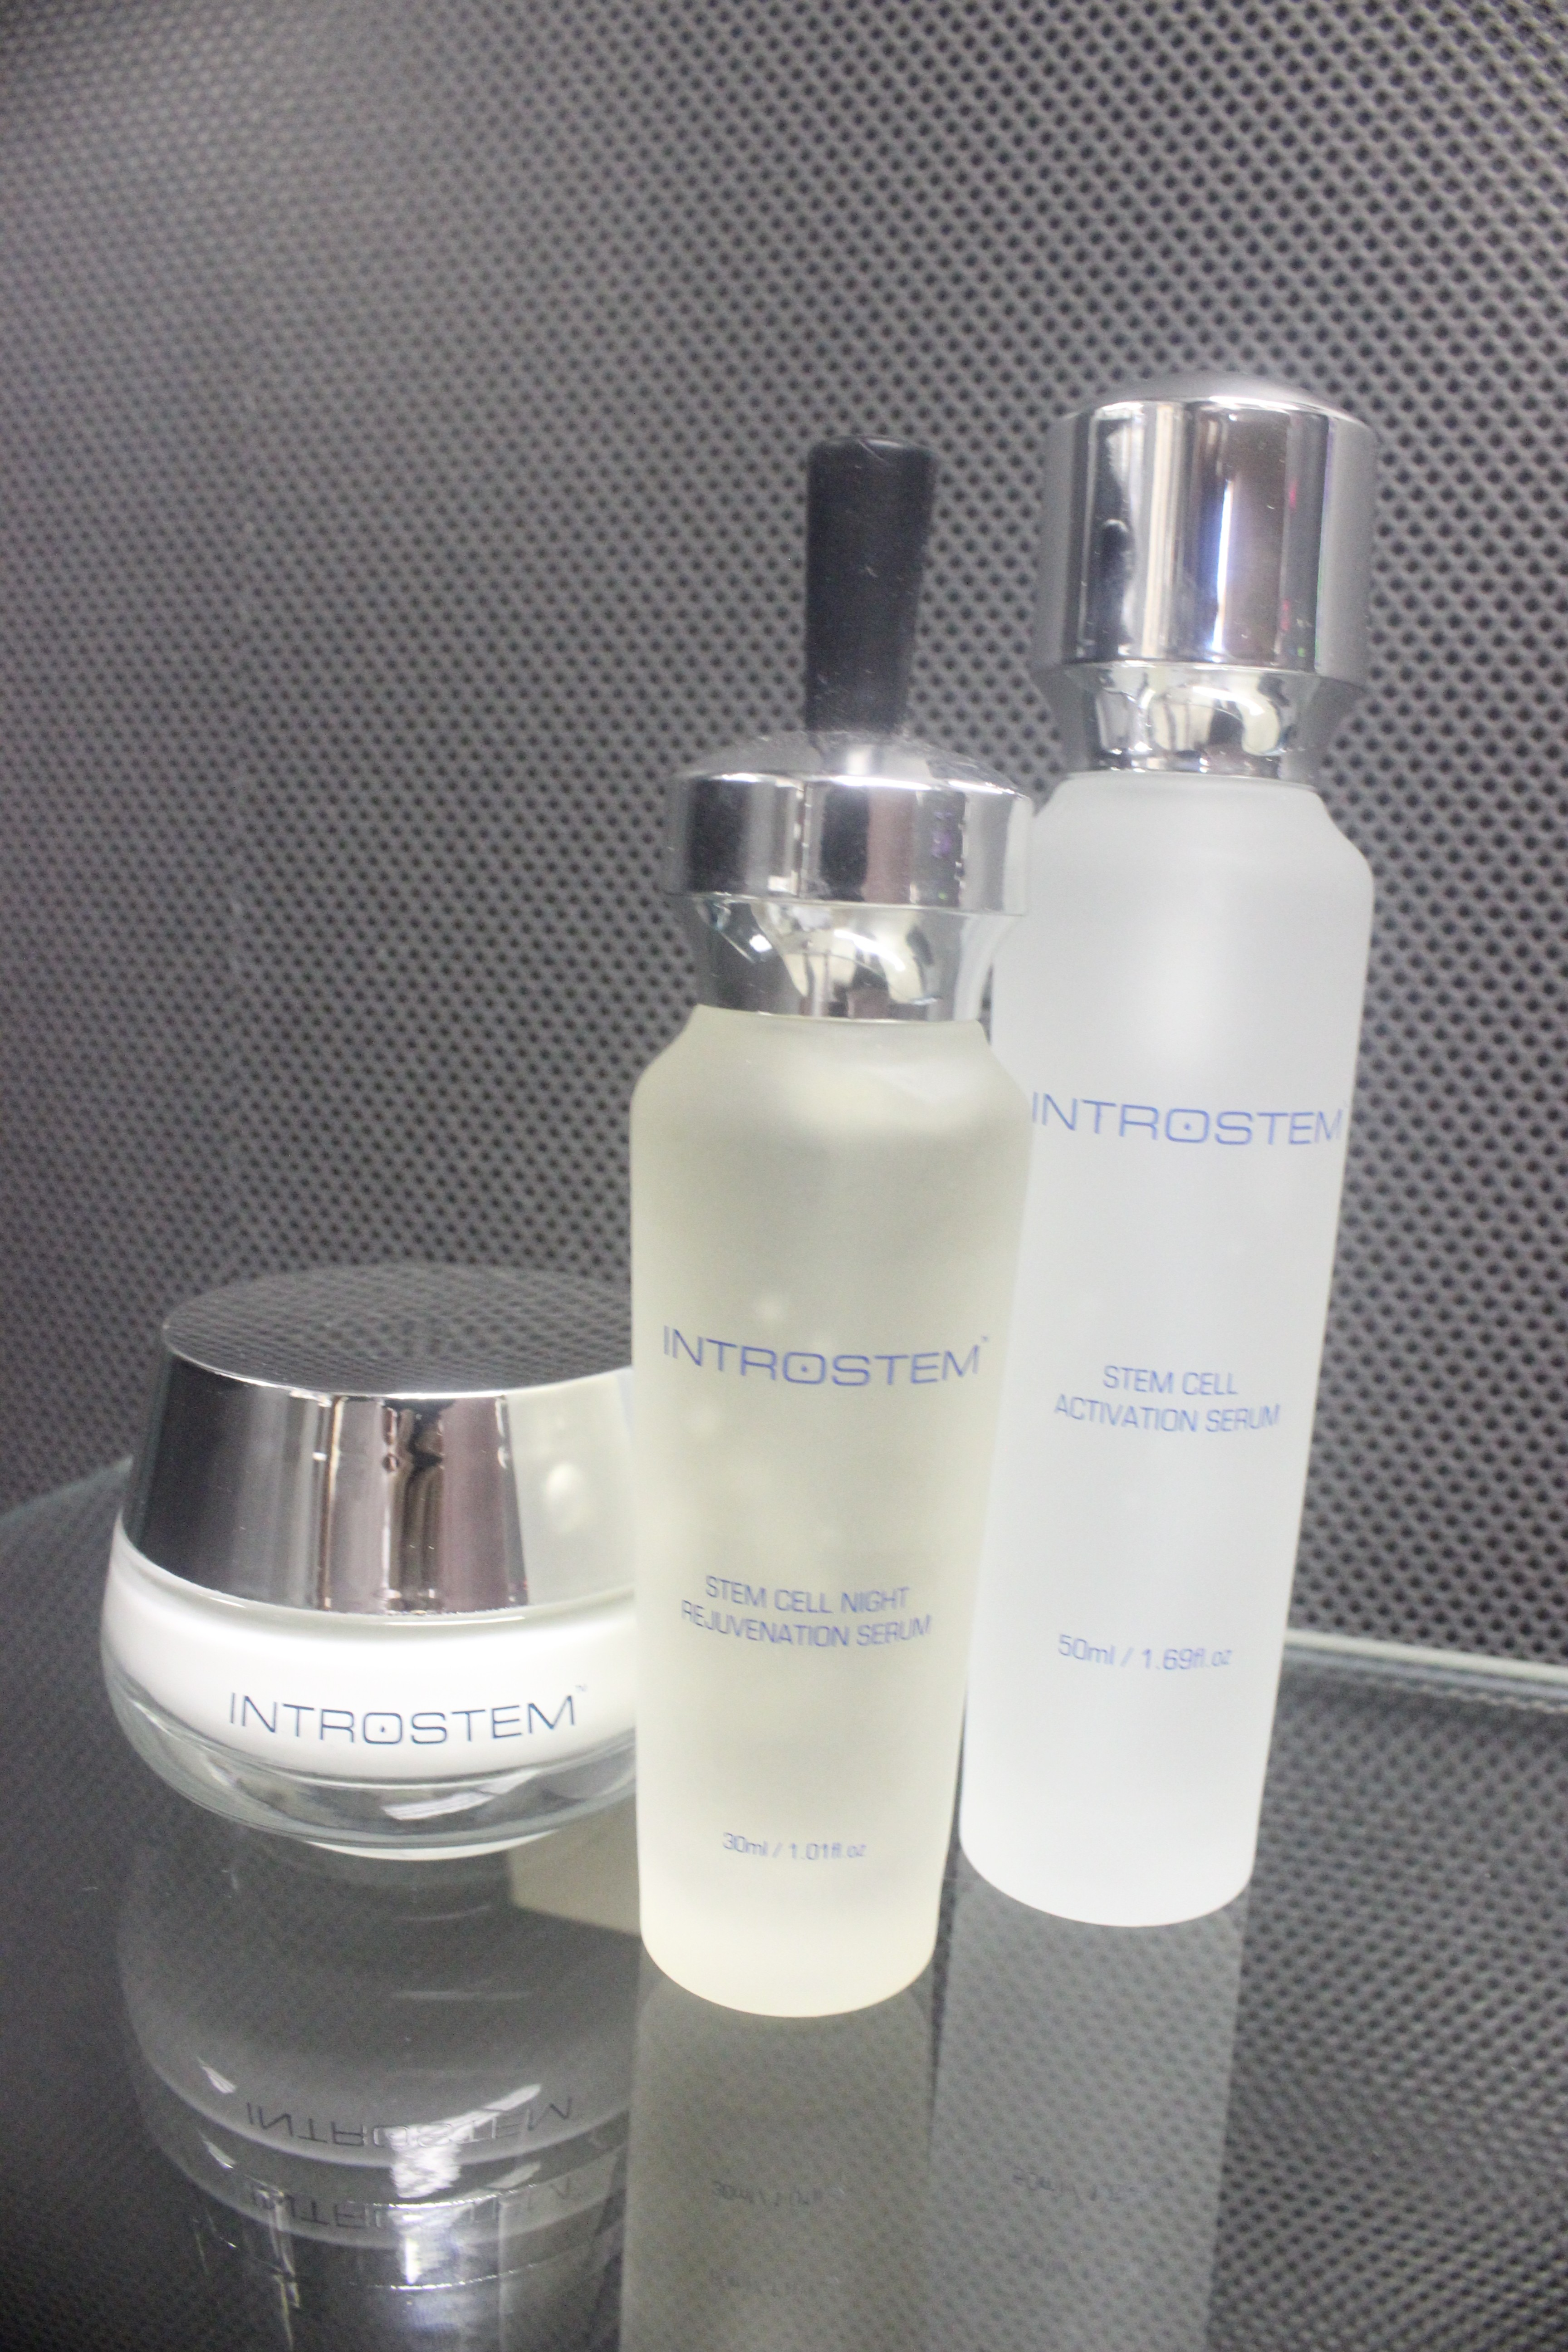 Introstem Stem Cell Night Rejuvenation Serum, Introstem Stem Cell Activation Serum, Stem Cell Dark Circle Eye Cream